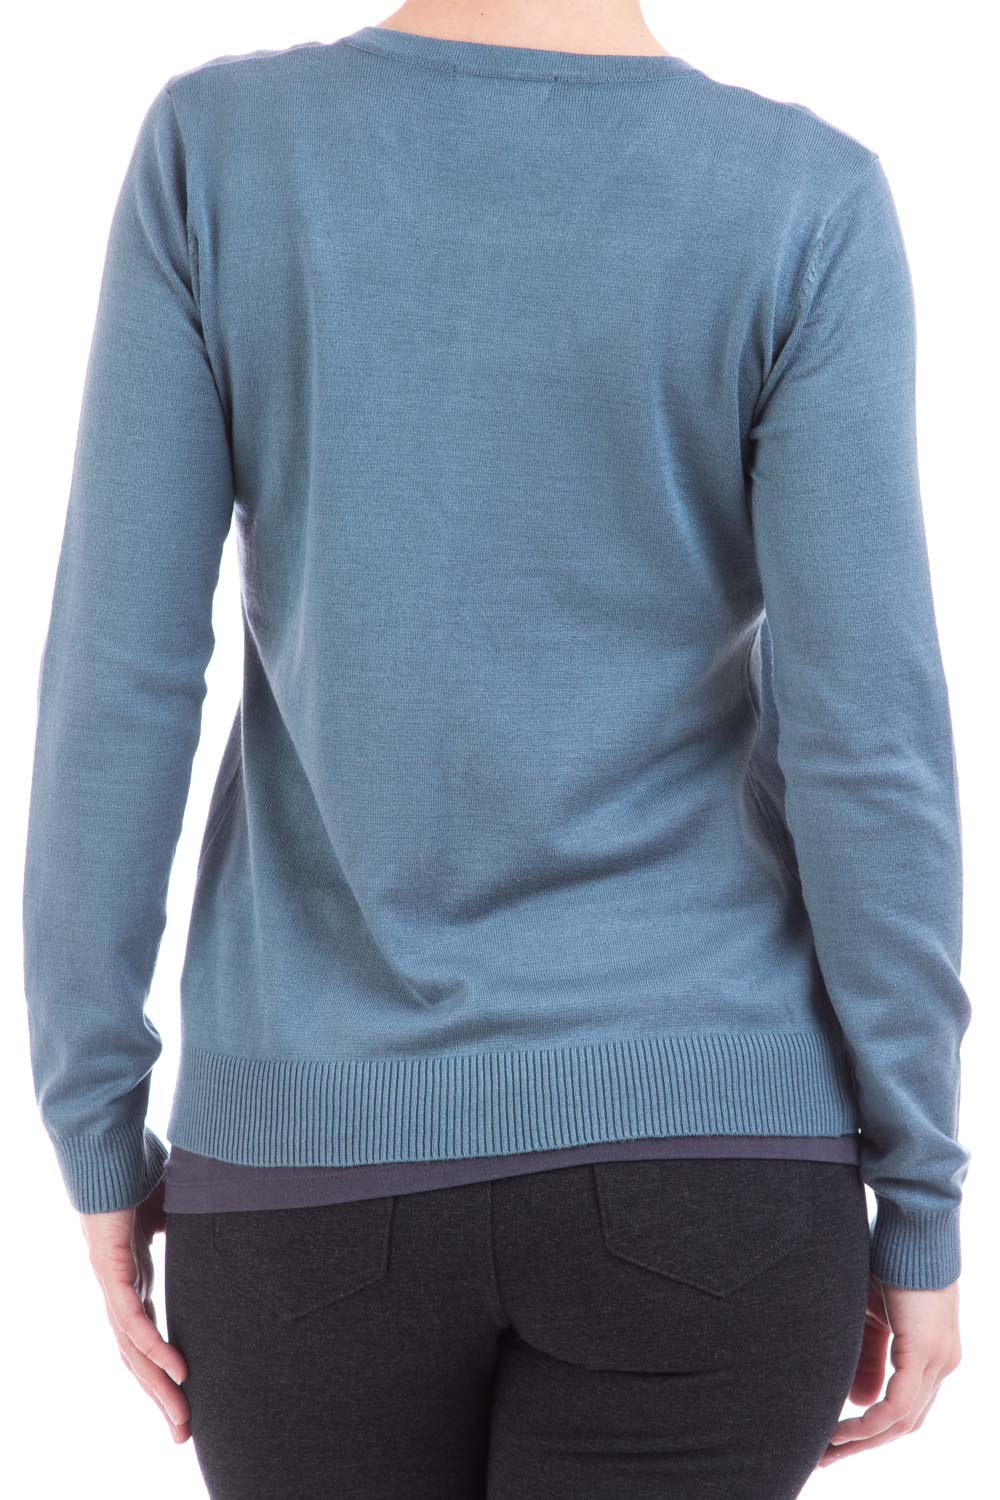 Type 2 Essential Crew-neck Cardigan In North Blue